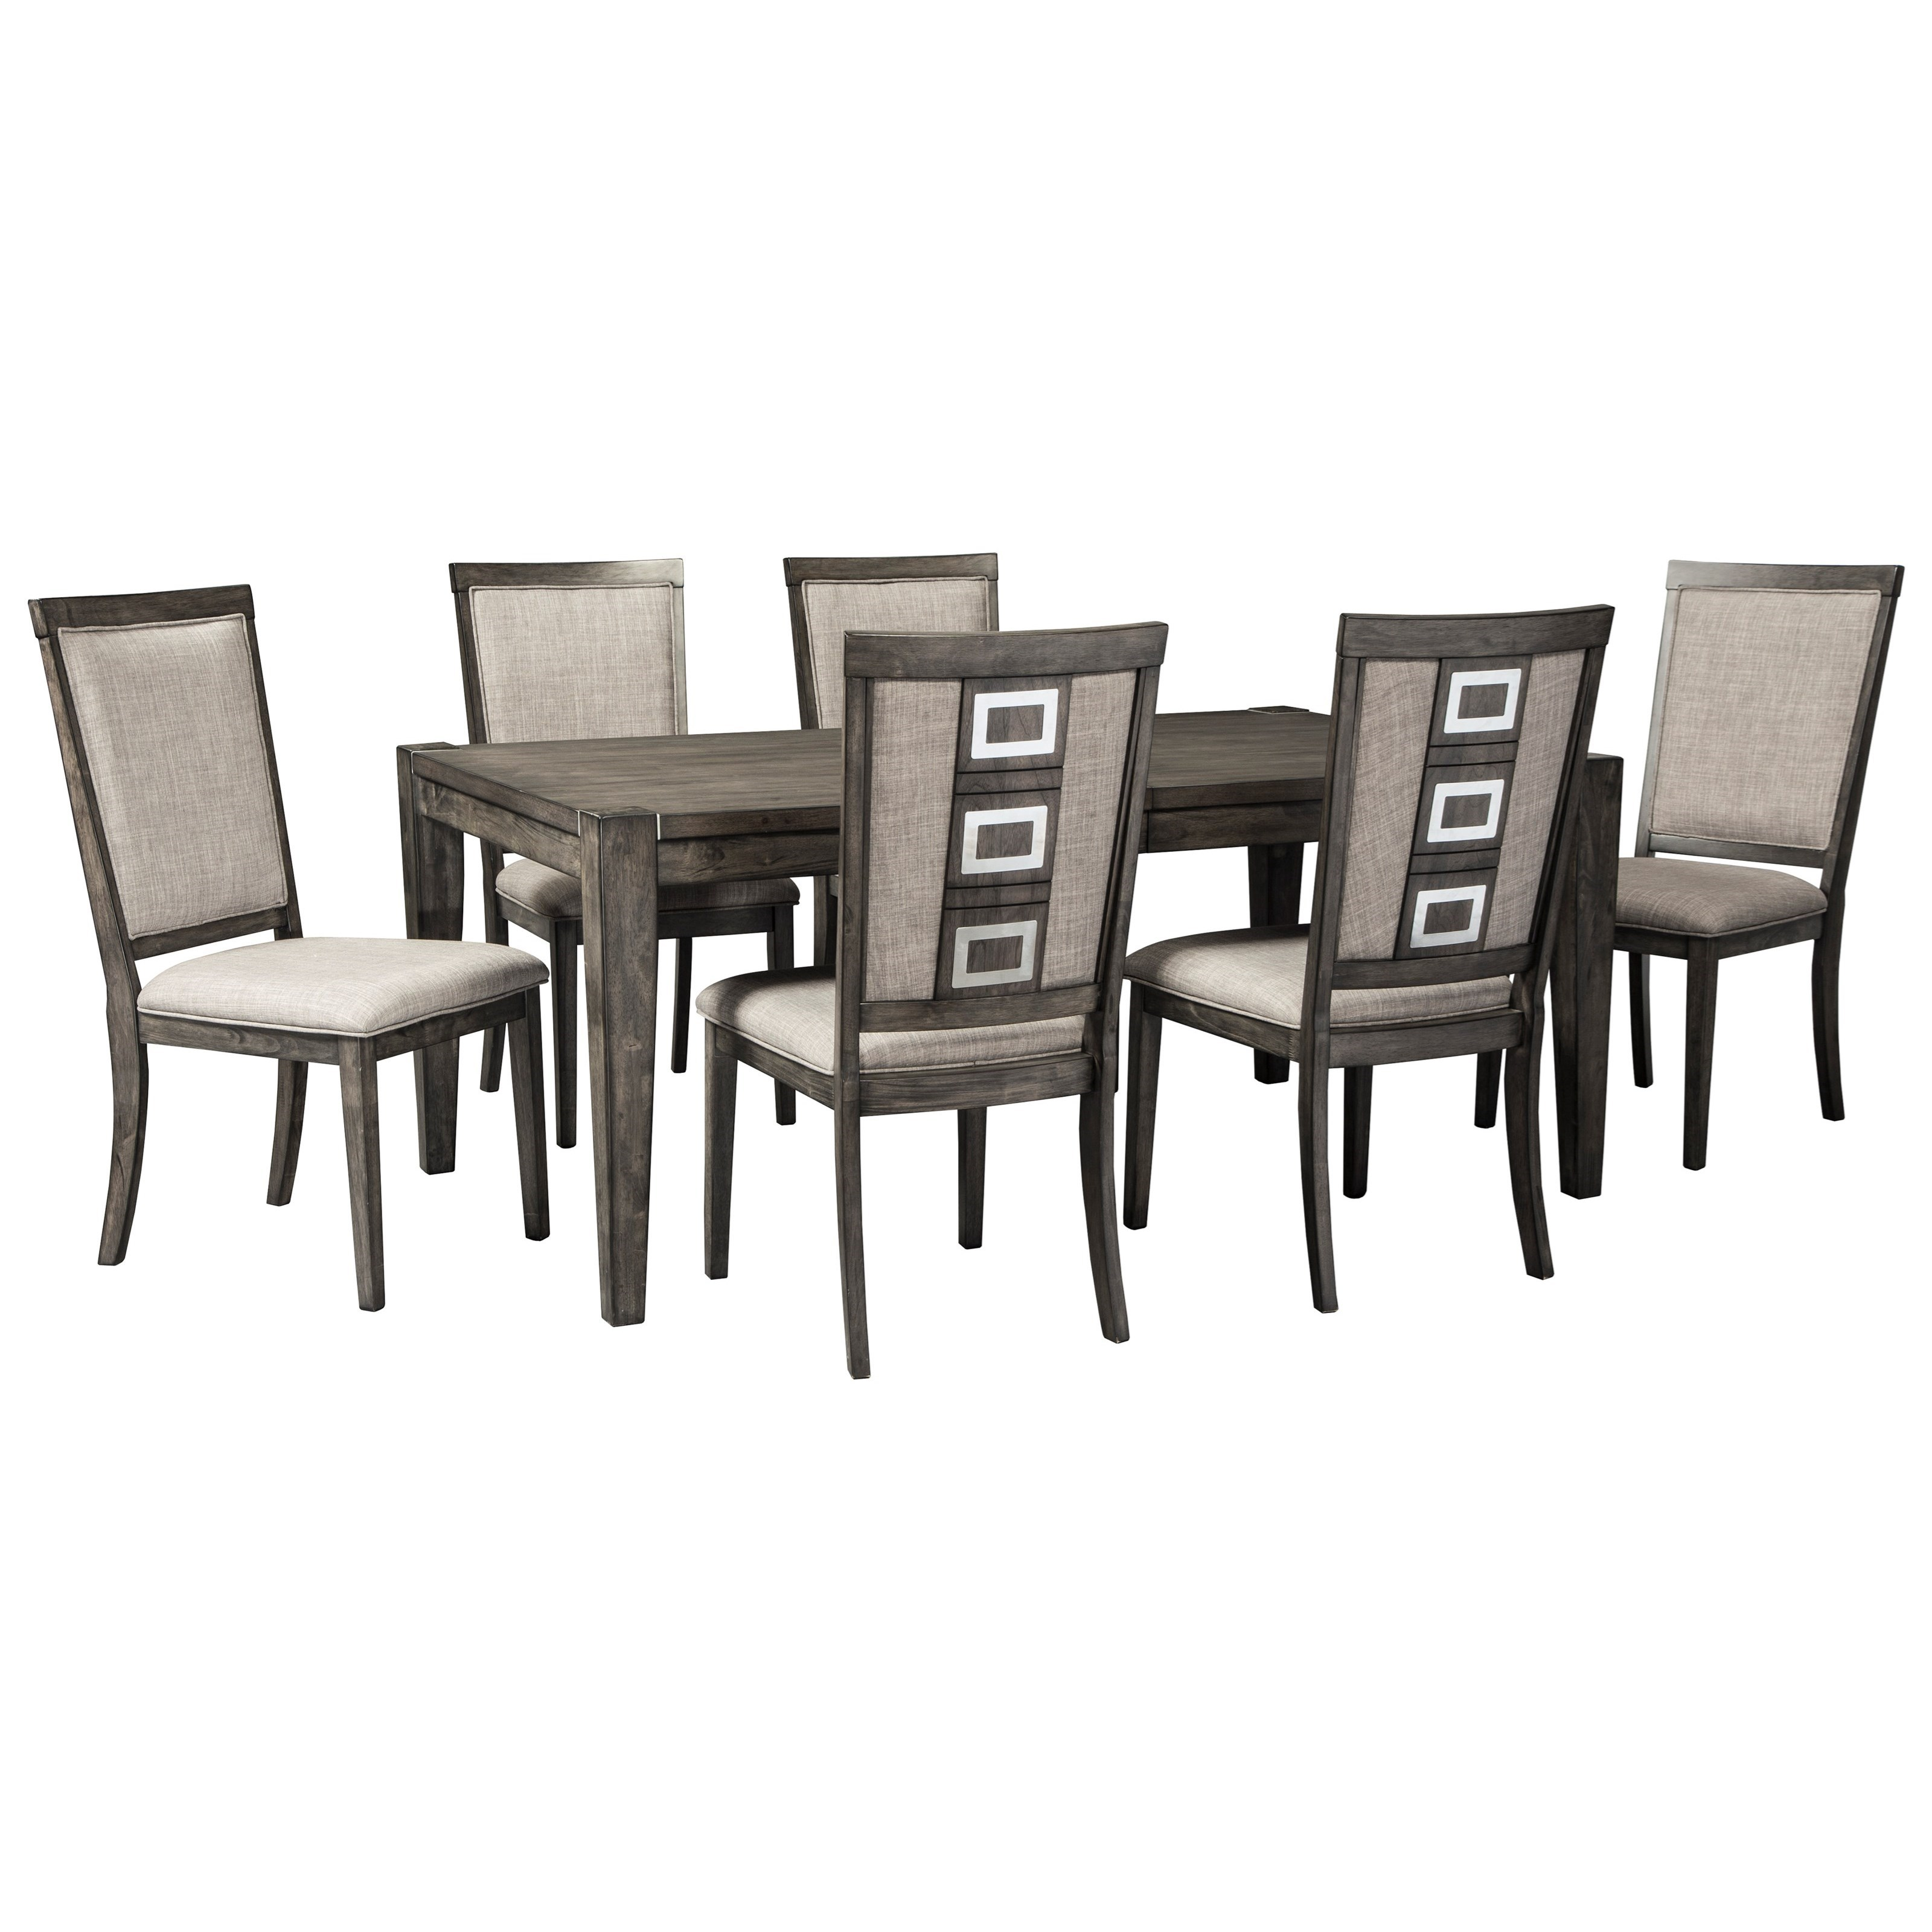 Signature Design by Ashley Channing 7 Piece Contemporary Rectangular Table Set - Item Number: D624-35+6x01